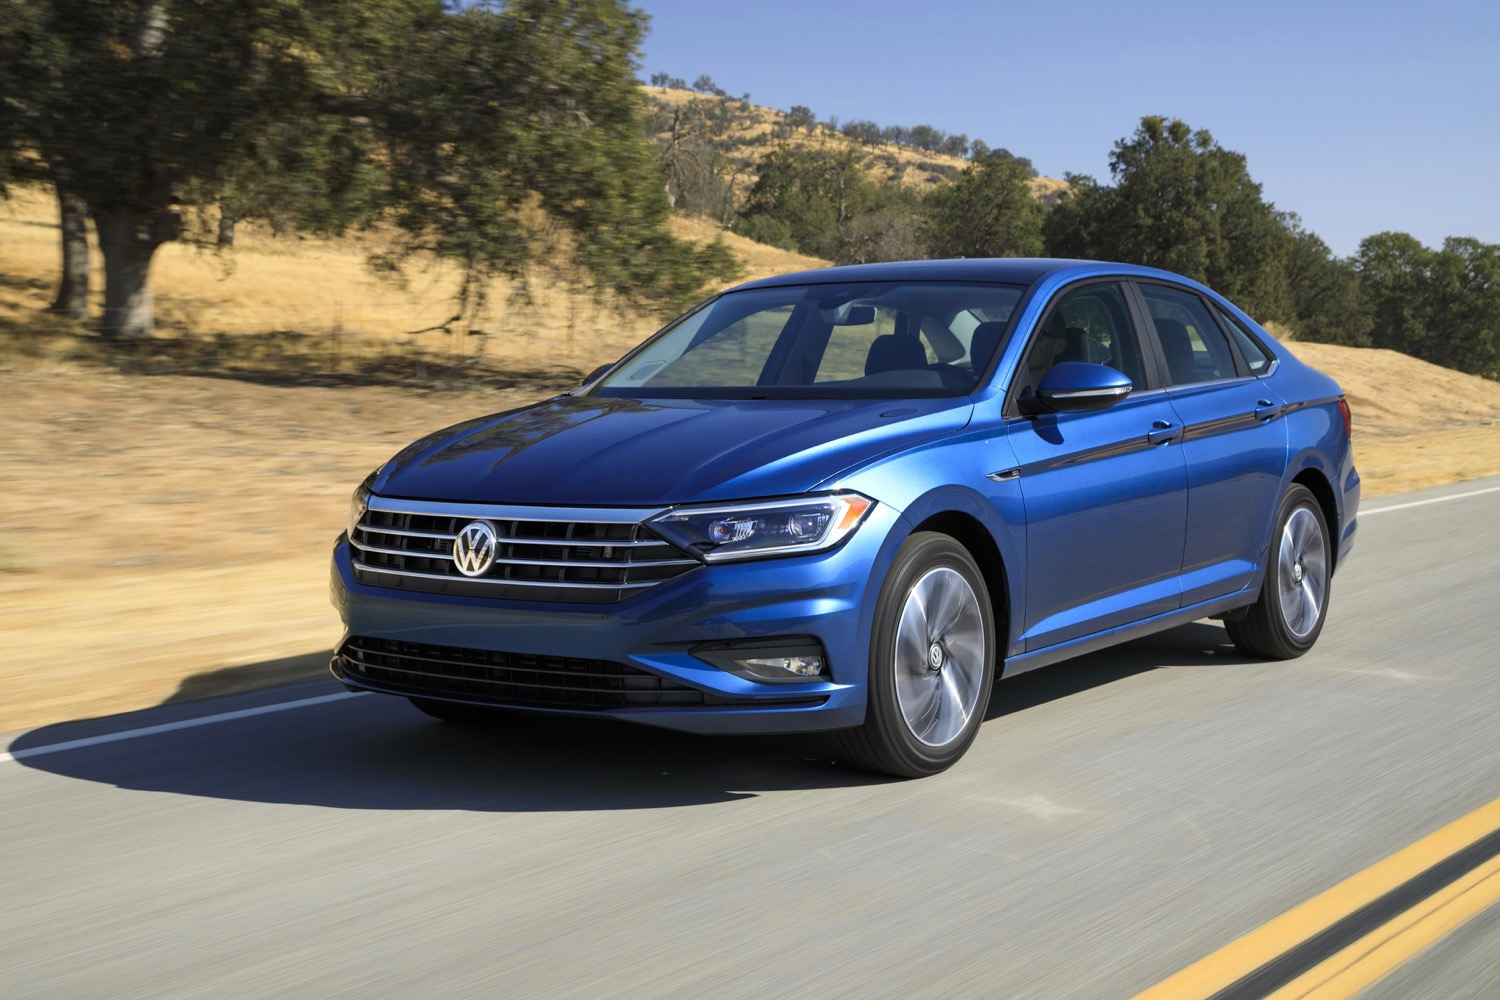 2019 volkswagen jetta is the compact car for hatchback haters. Black Bedroom Furniture Sets. Home Design Ideas